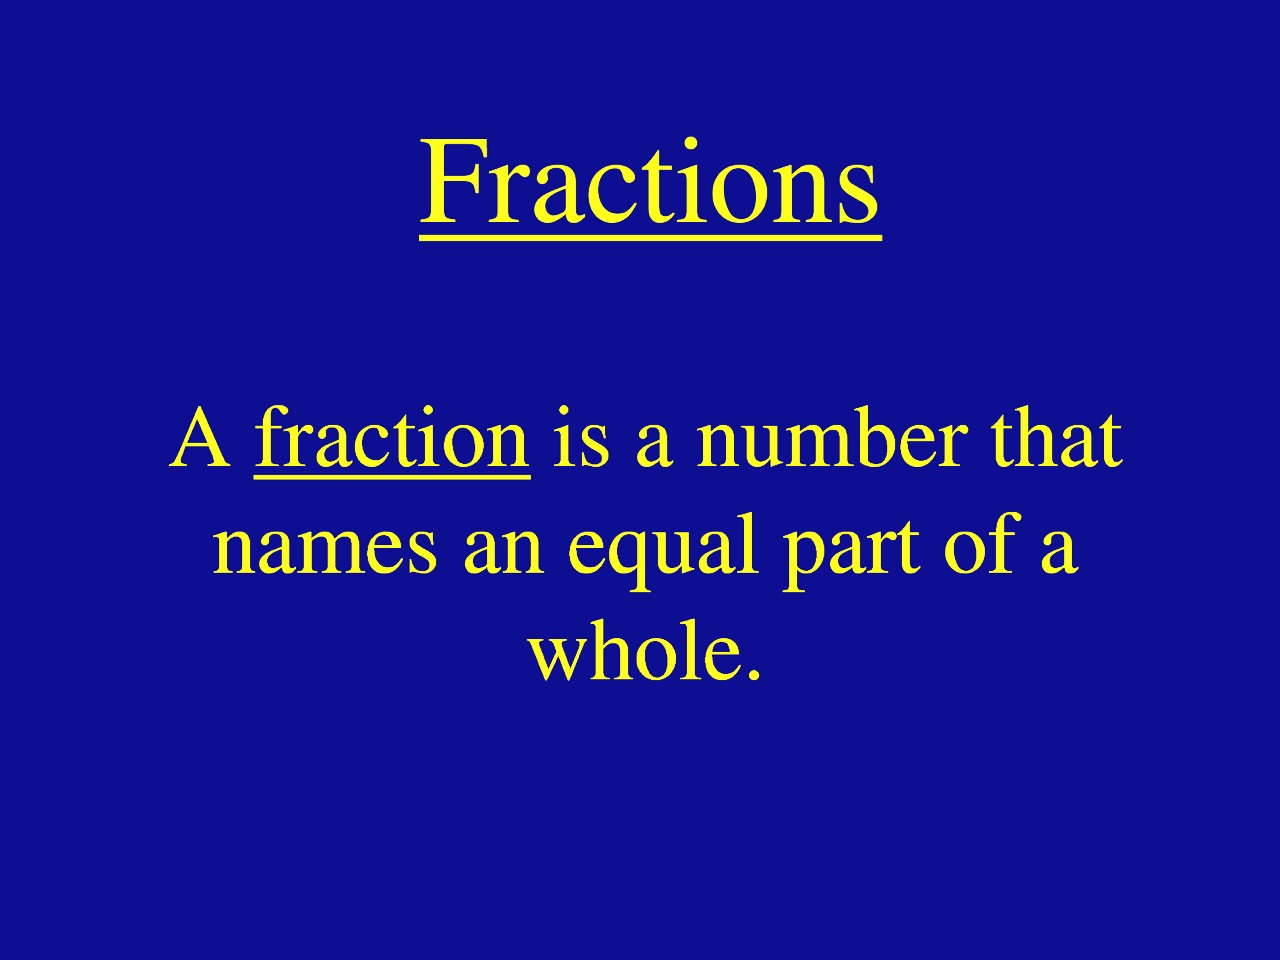 How To Find The Missing Numerator Or Denominator To Make